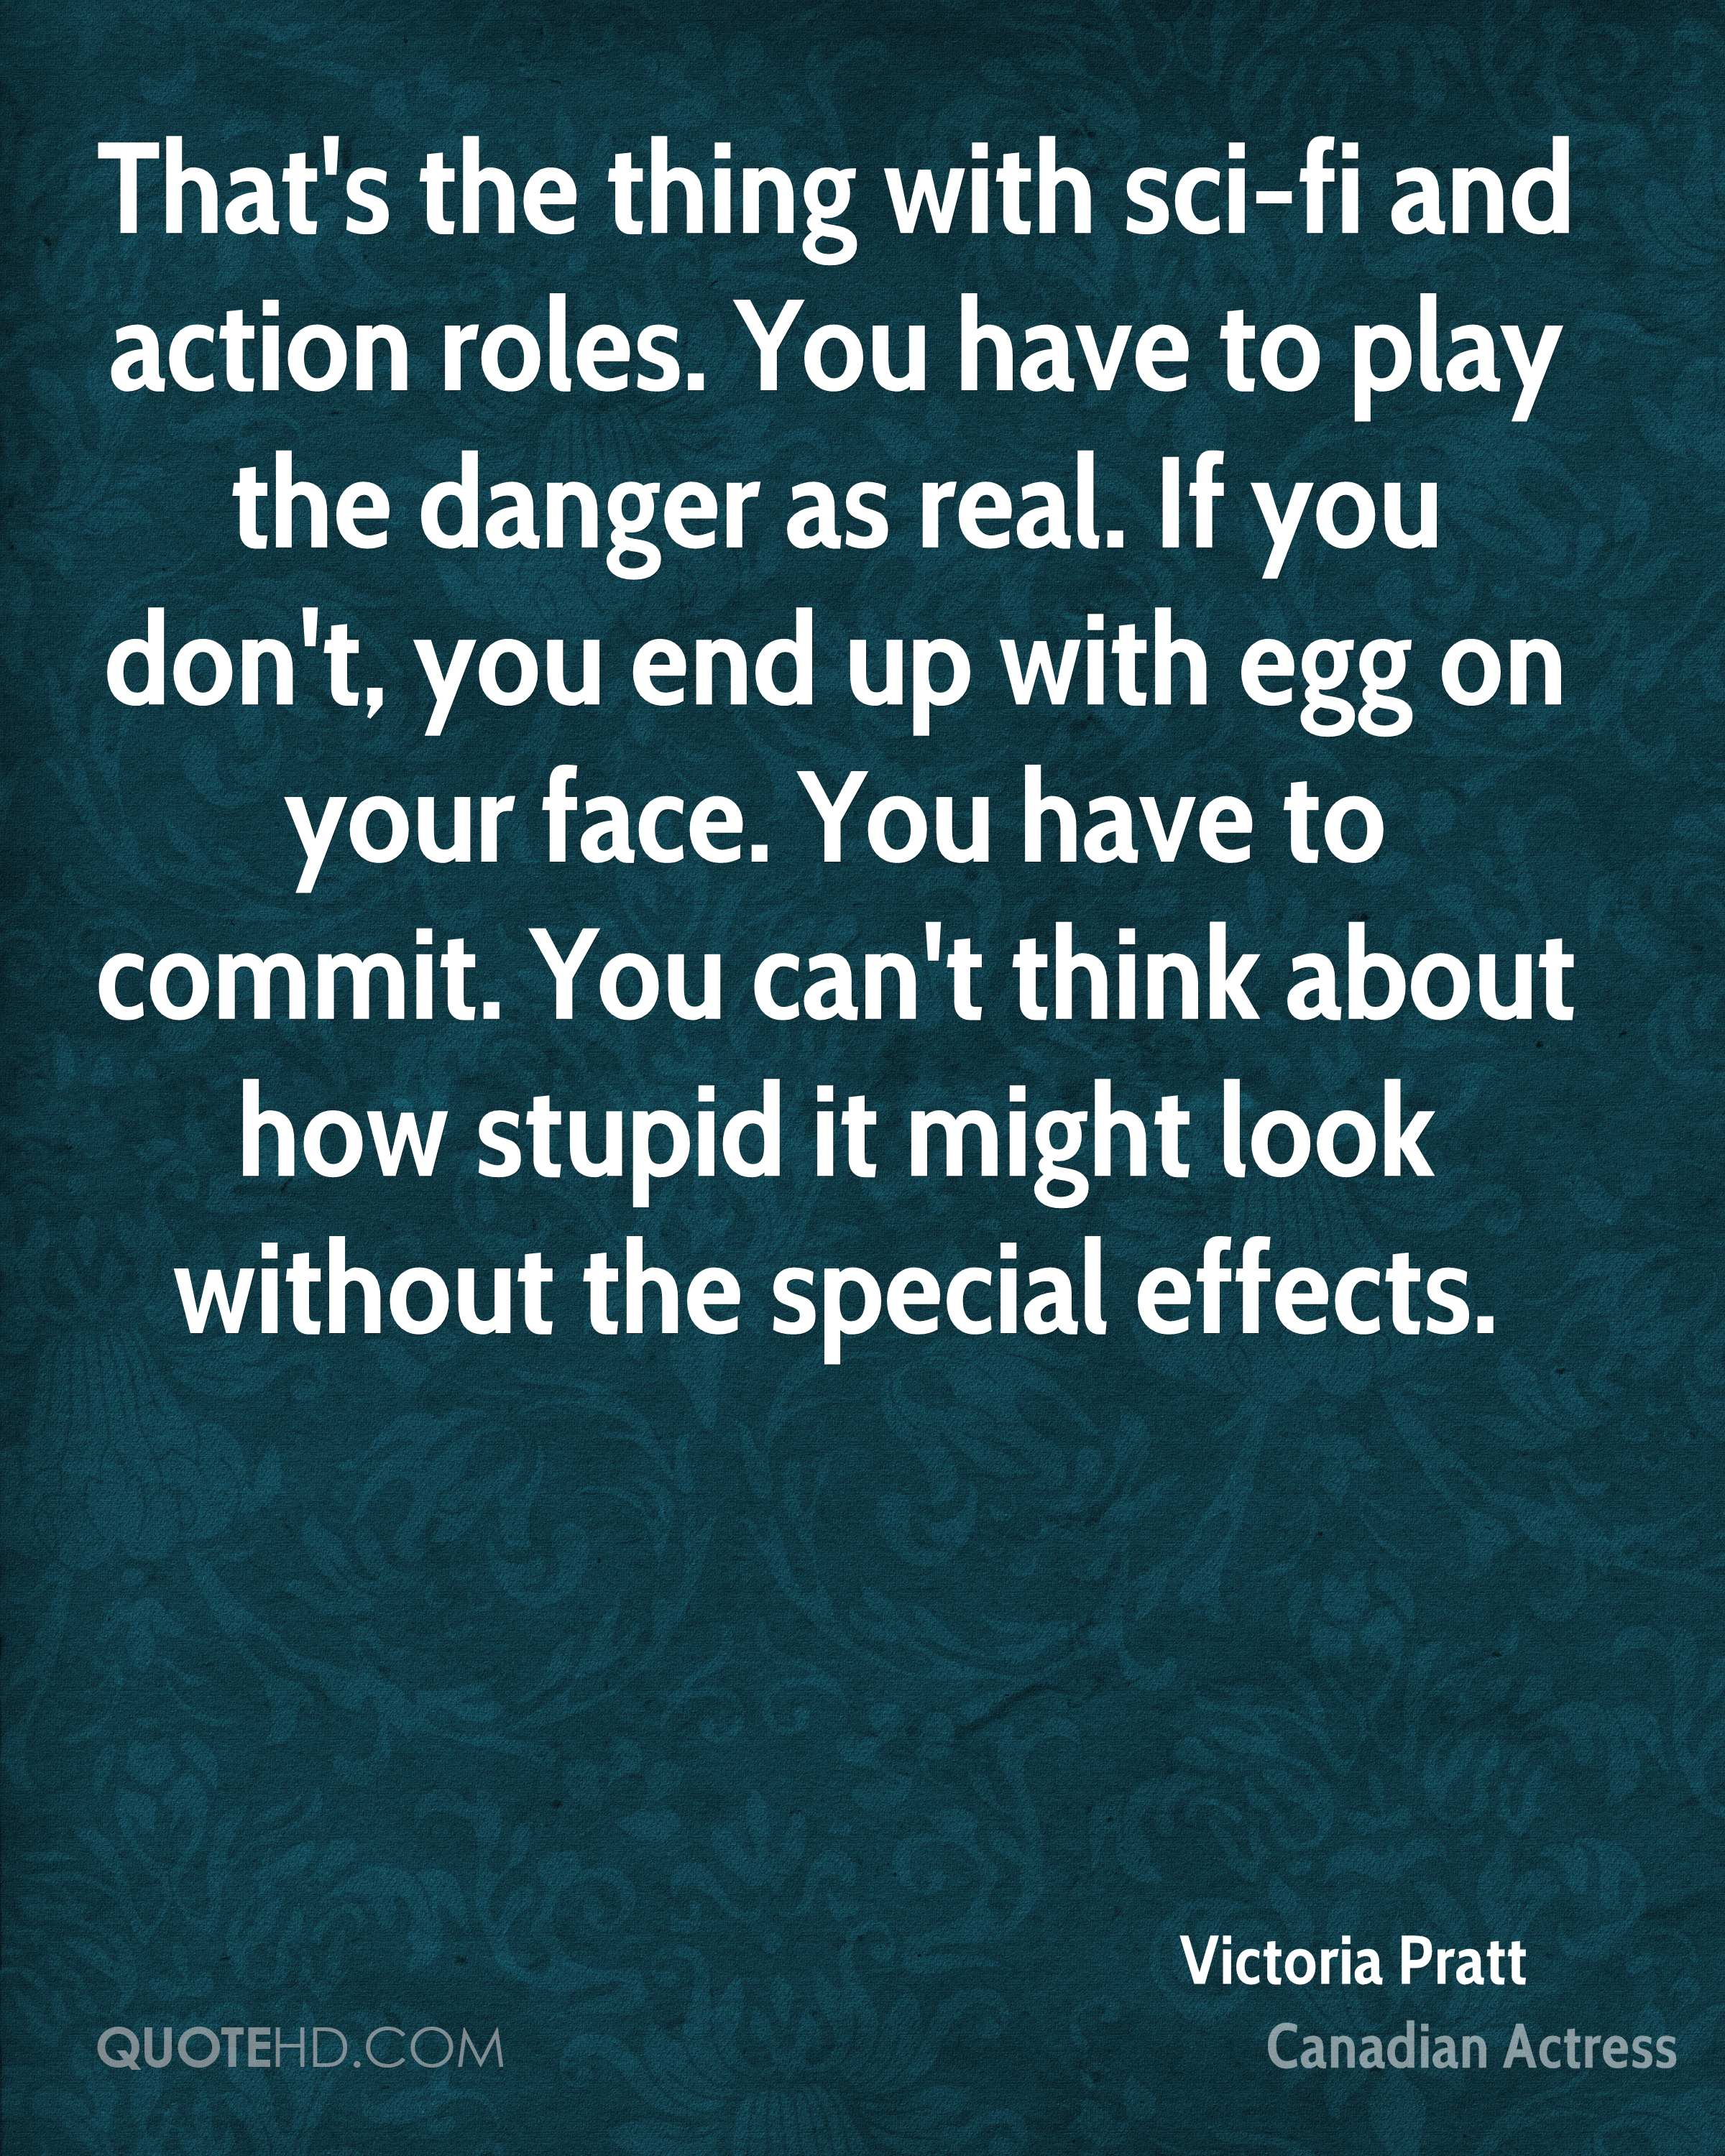 That's the thing with sci-fi and action roles. You have to play the danger as real. If you don't, you end up with egg on your face. You have to commit. You can't think about how stupid it might look without the special effects.